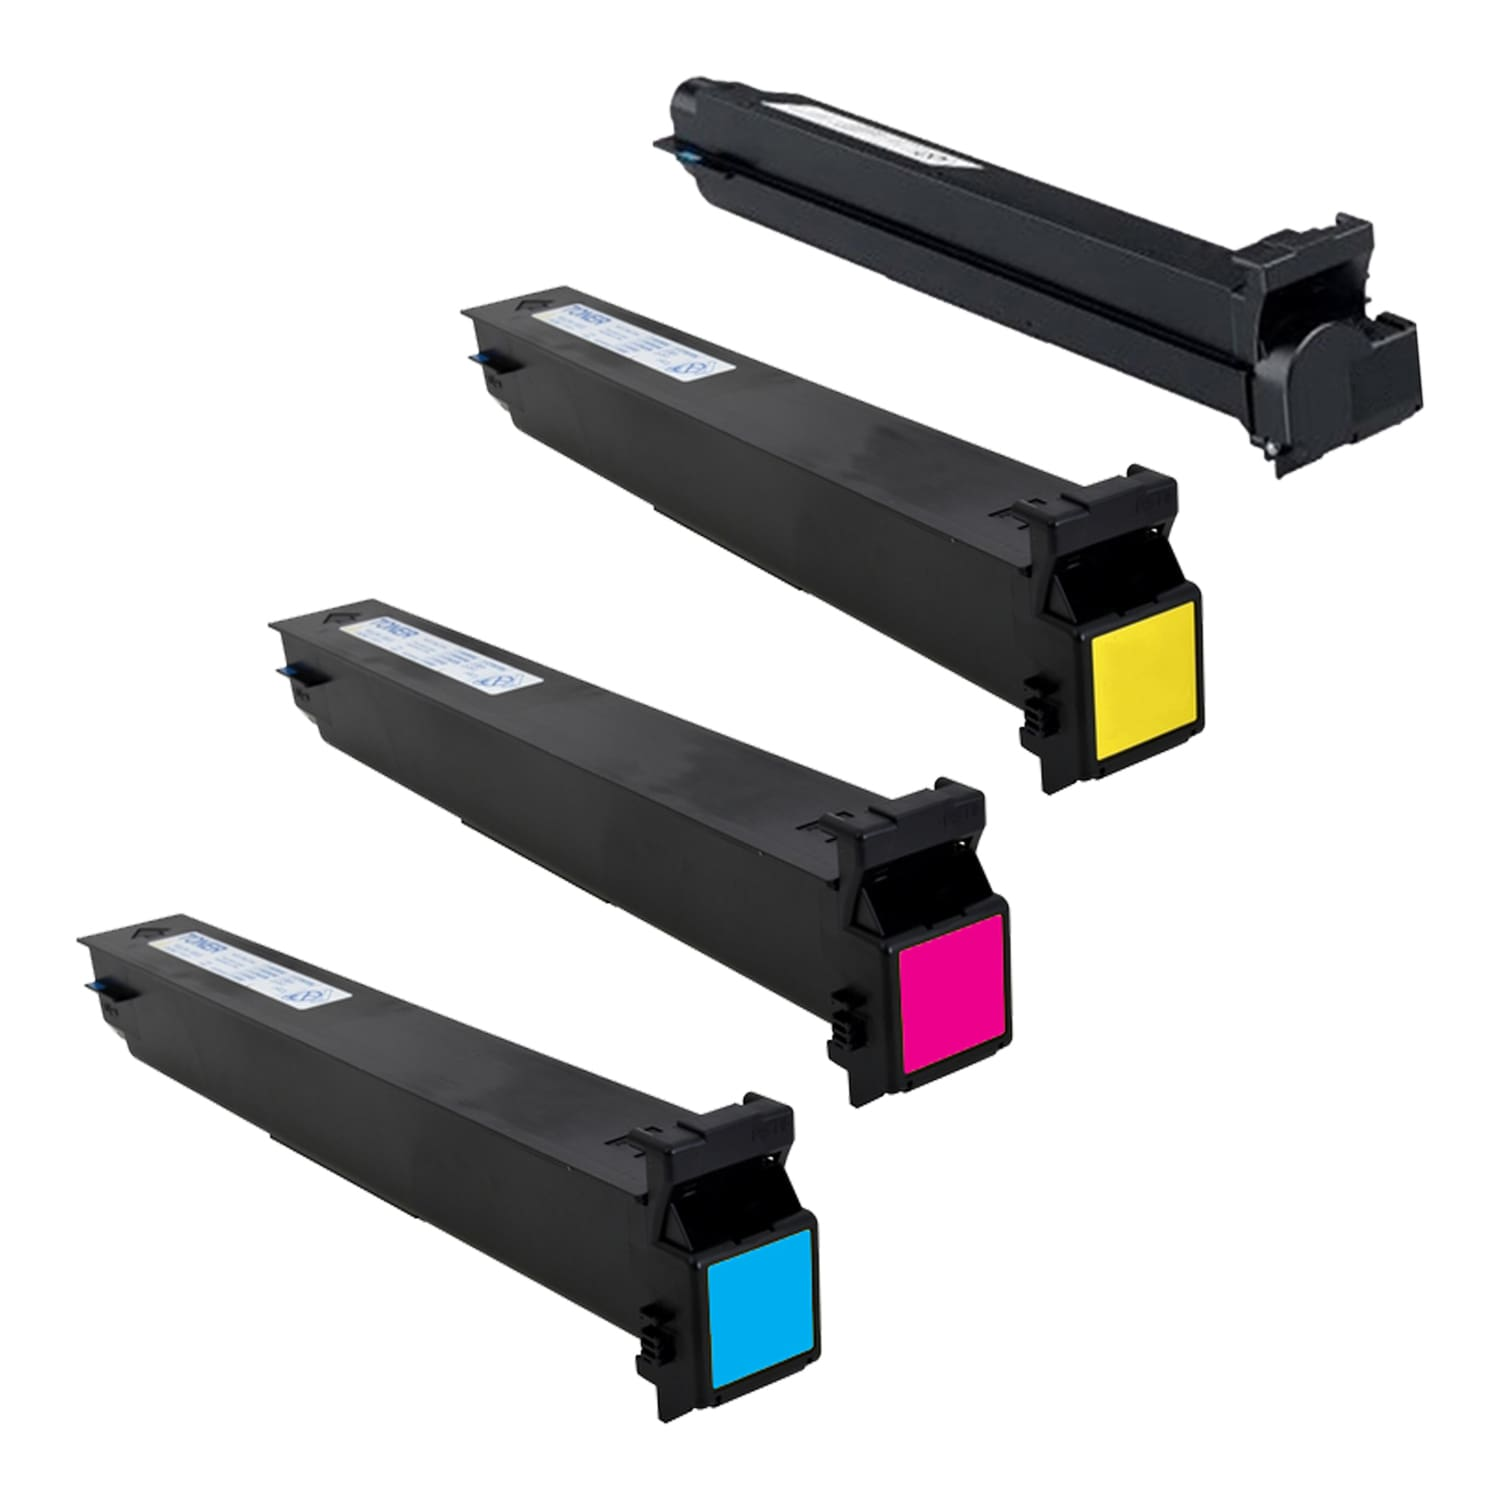 Compatible Konica-Minolta TN213 Toner Pack - 4 Cartridges